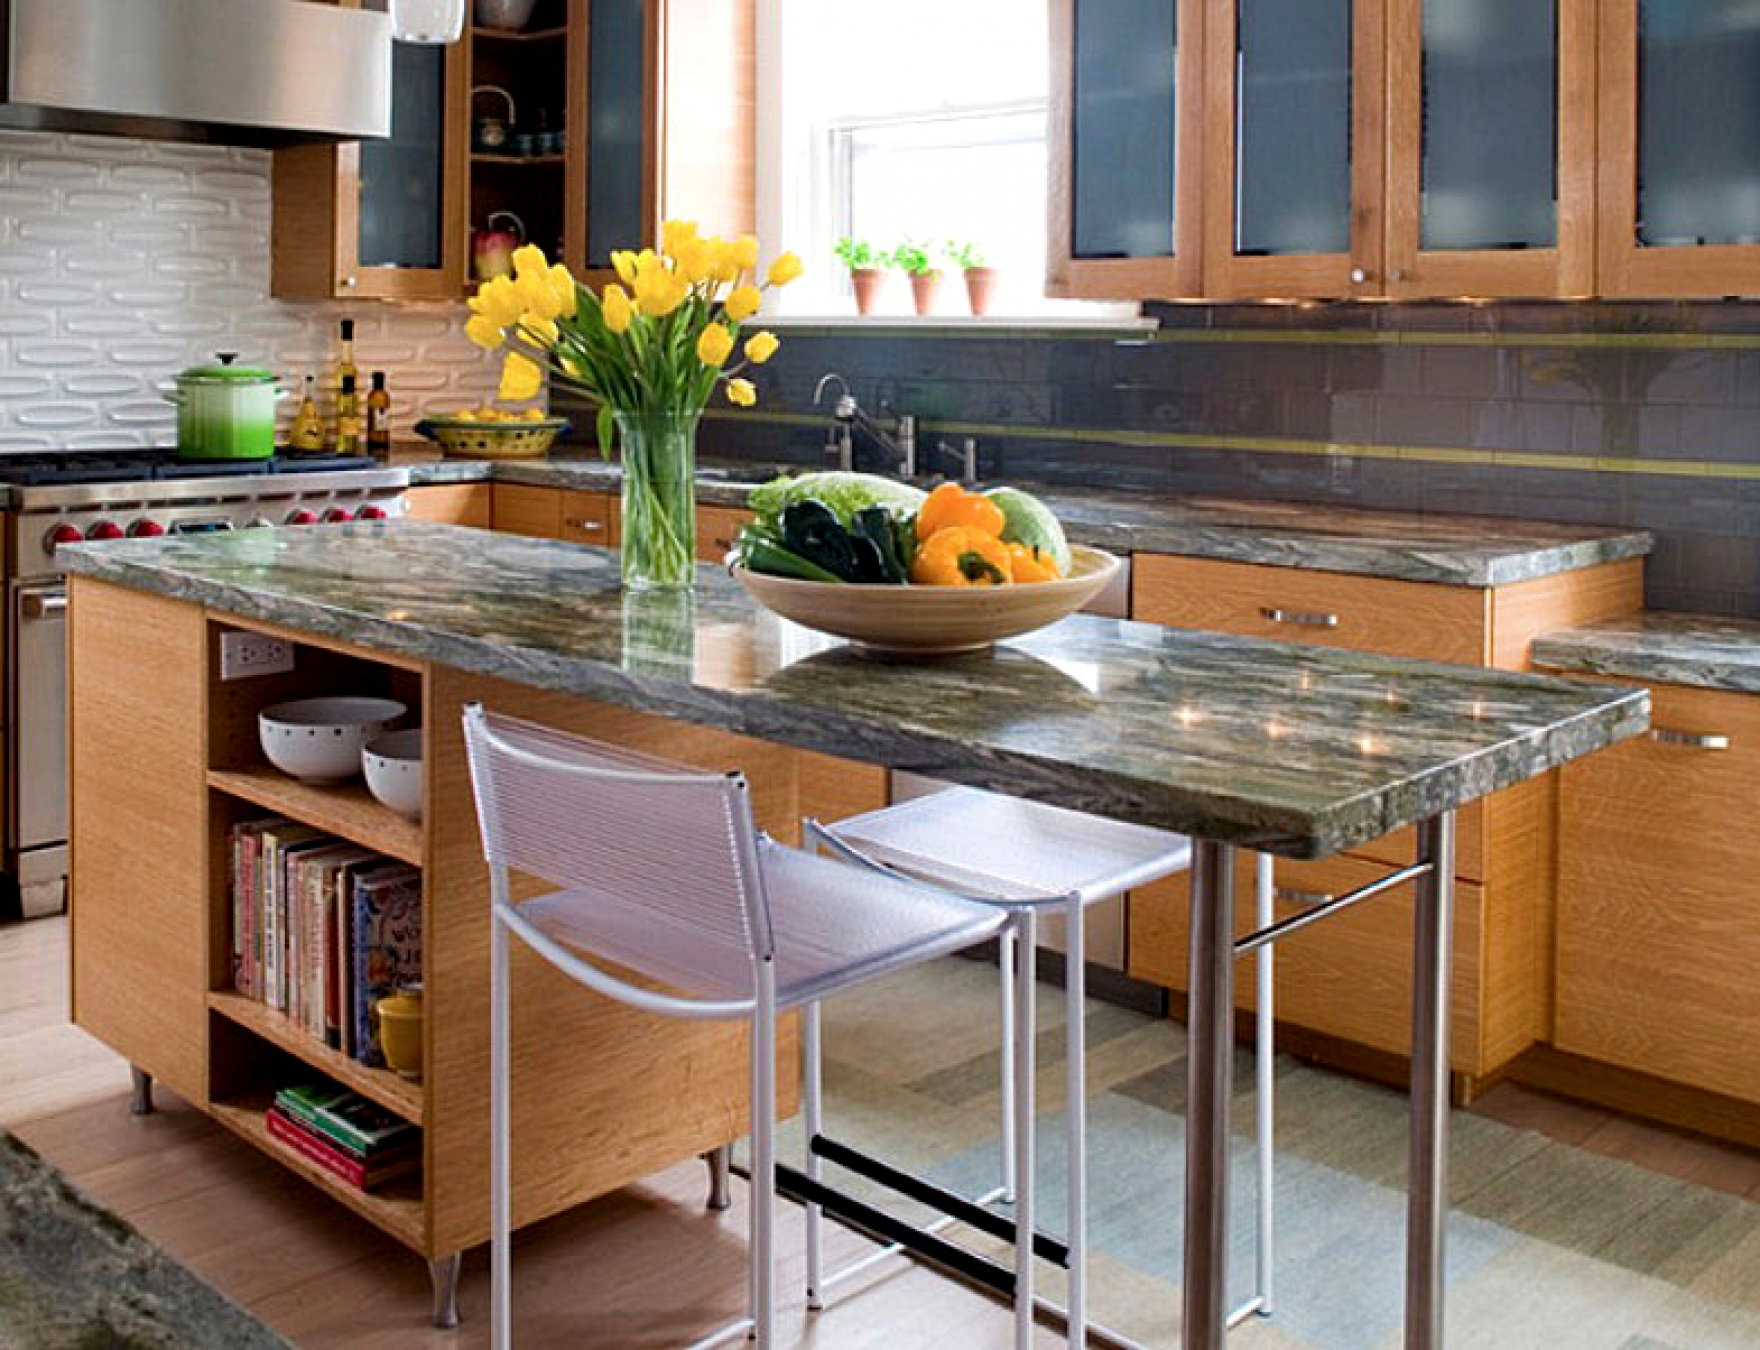 Ideas For Kitchen Islands In Small Kitchens 50 Lovely Kitchen Island Designs 2019 Ideas For Kitchen Planning